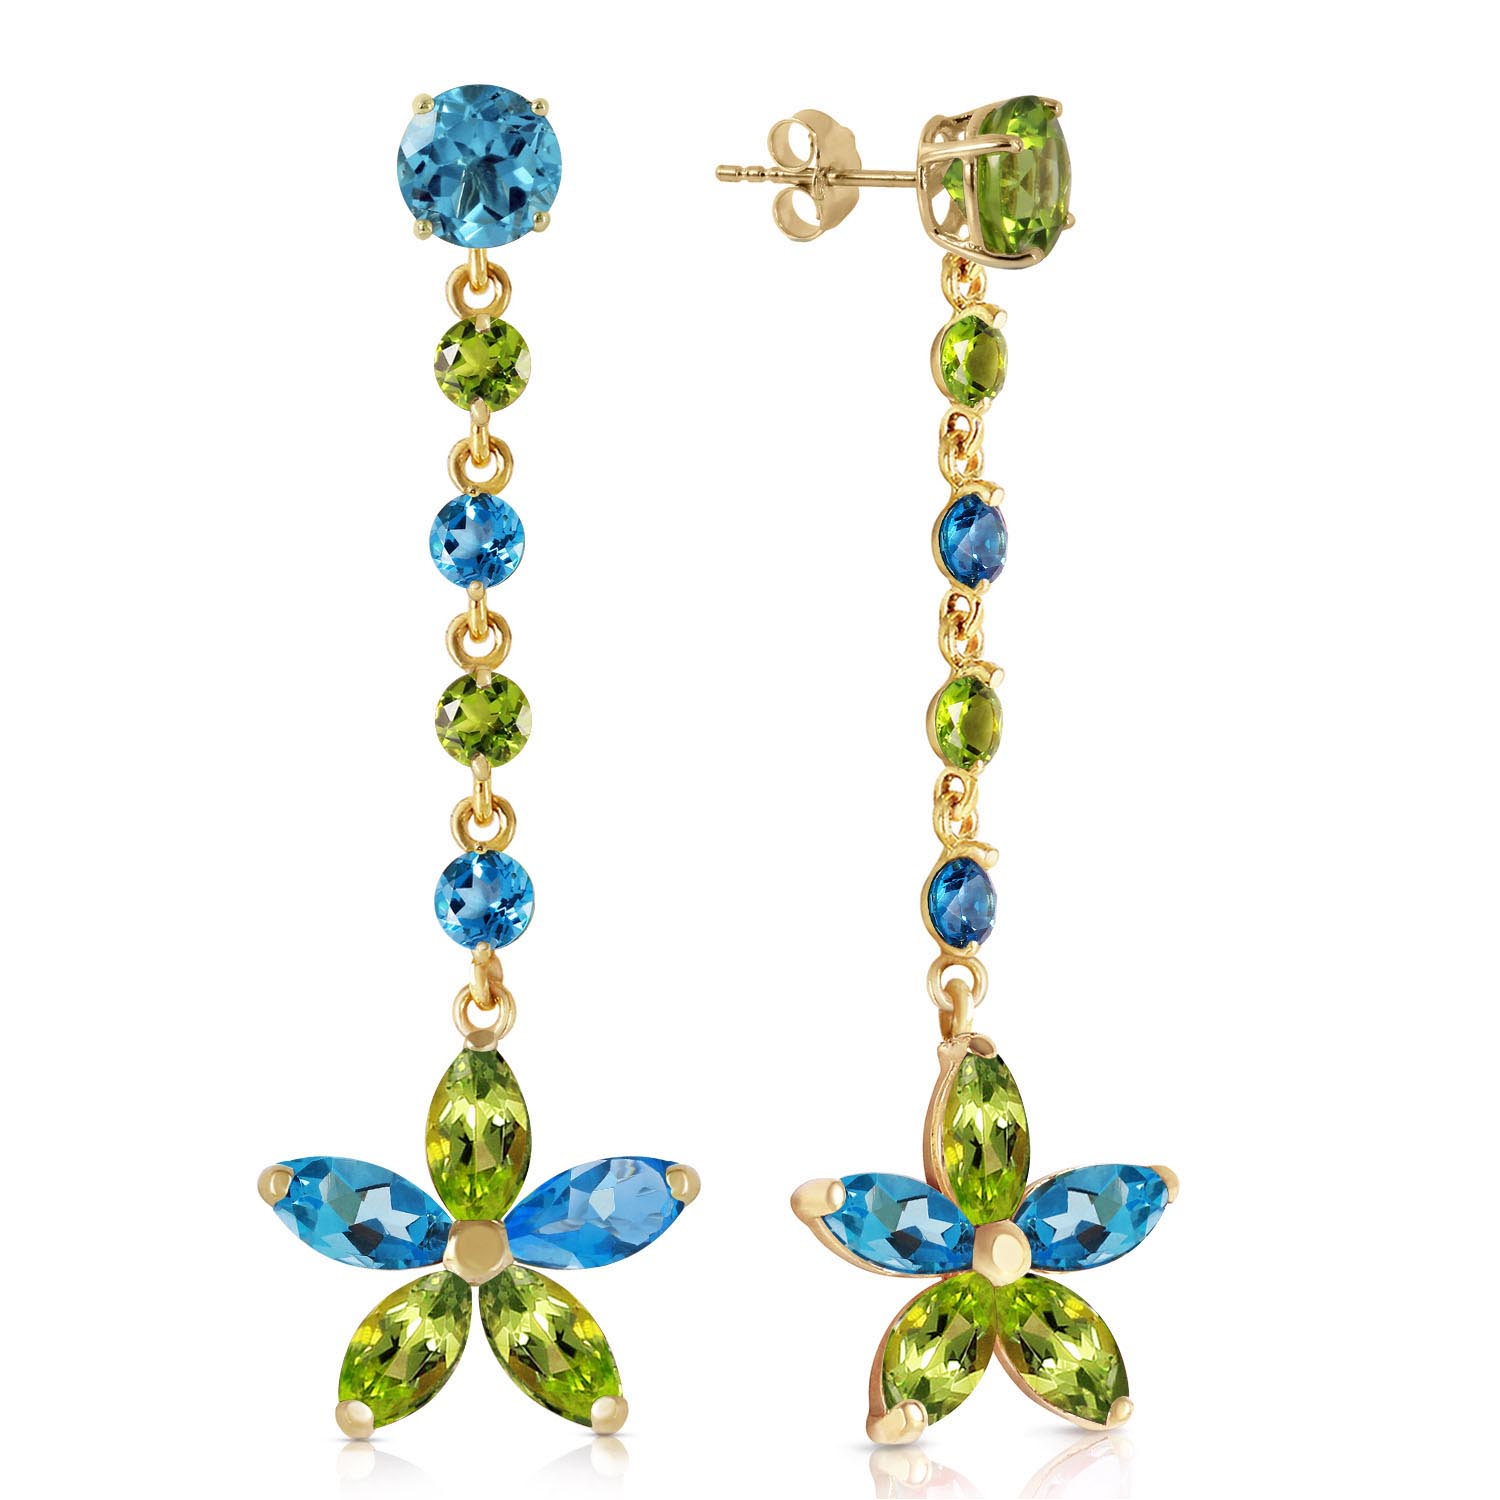 Blue Topaz and Peridot Daisy Chain Drop Earrings 4.8ctw in 9ct Gold